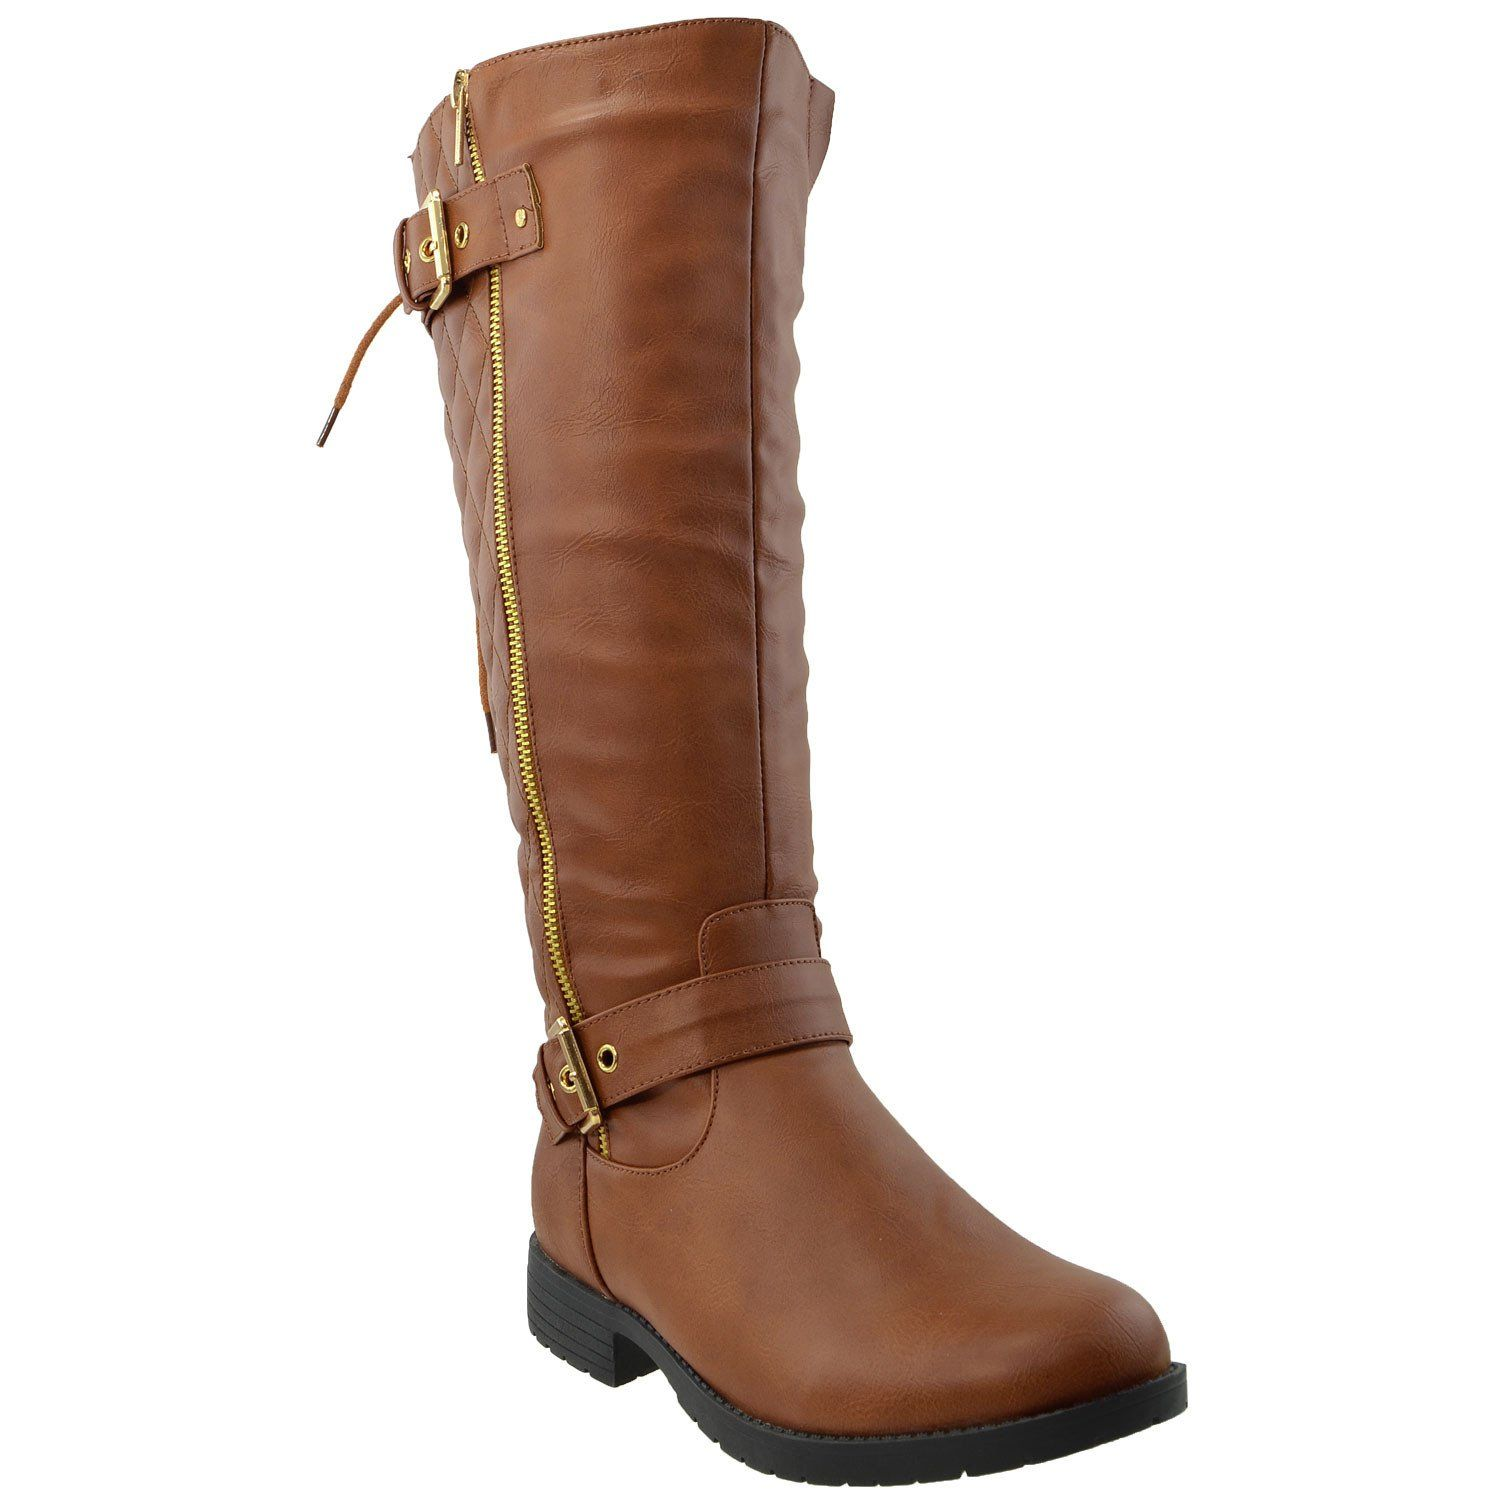 Womens Knee High Boots Quilted Back Lace Up Adjustable Strap Shoes Brown Womens High Heel Boots Boots Knee High Boots